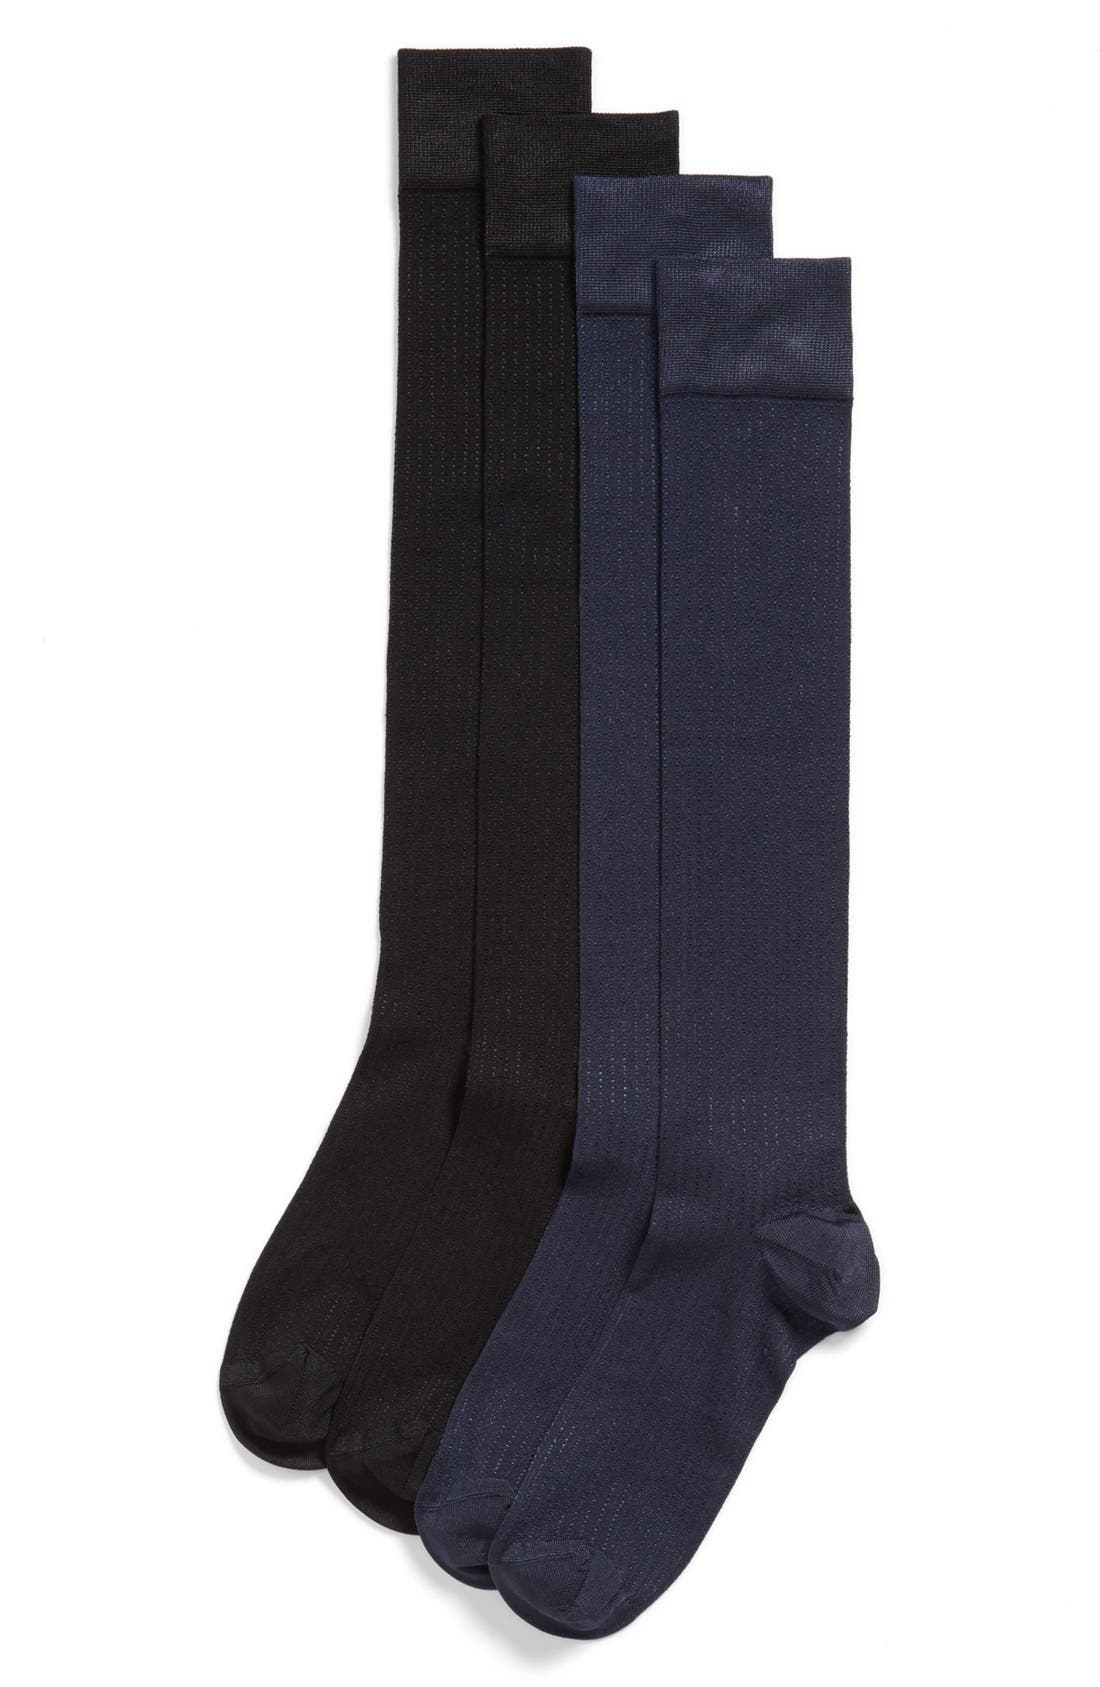 Main Image - Ralph Lauren 'Vertical Shine' Knee High Socks